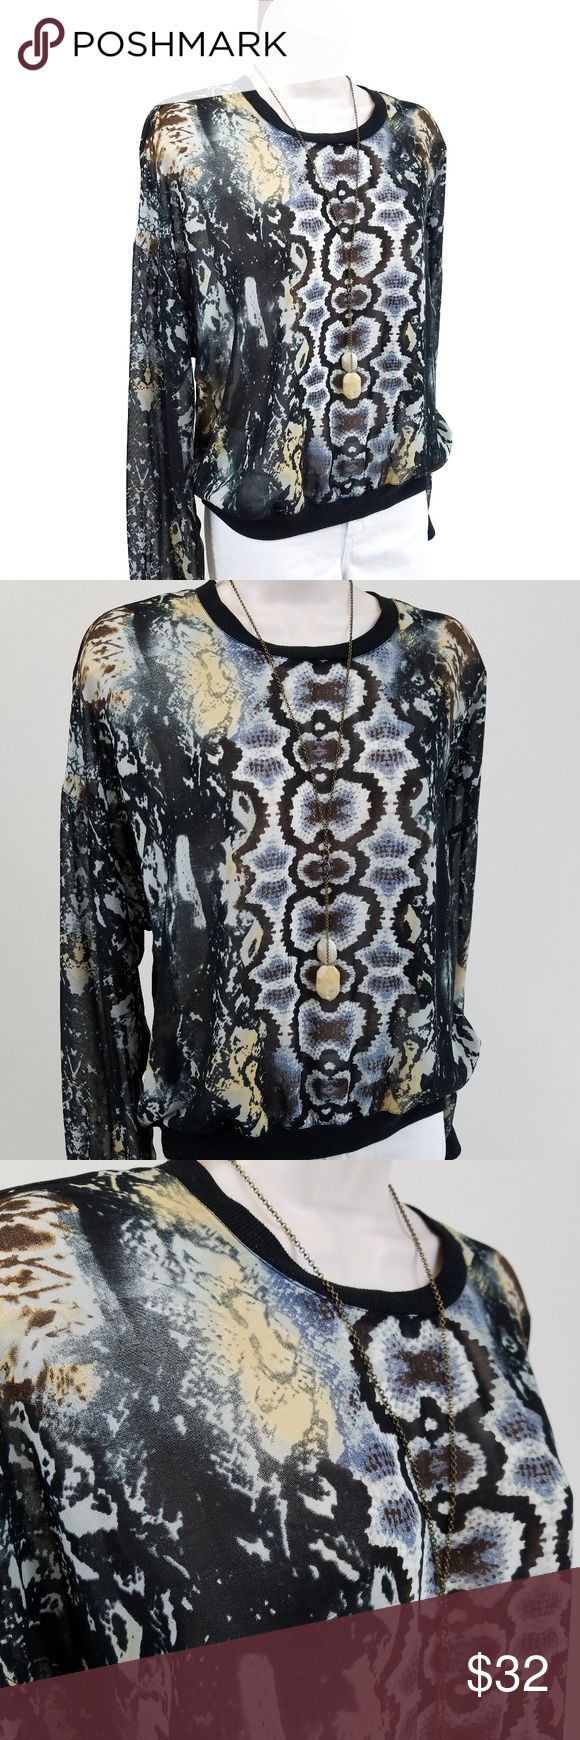 CAbi semi sheer python print top Dressed up sweatshirt in python print: long-sleeved crew neck top cut like a sweatshirt but made of a semi-sheer python / snake print.  Dropped shoulder.  Style 572.  Bust 22 / length 23 inches.  100% polyester. CAbi Tops